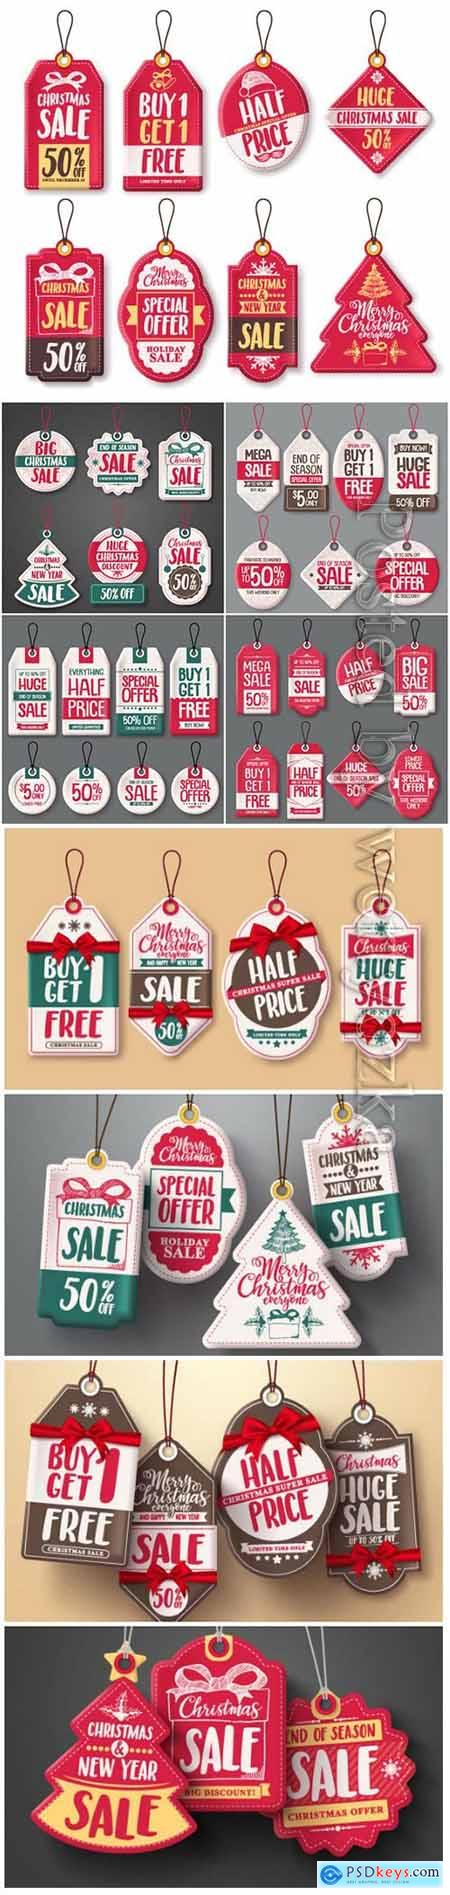 Christmas hanging sale tags vector set in white color with different shapes and greetings